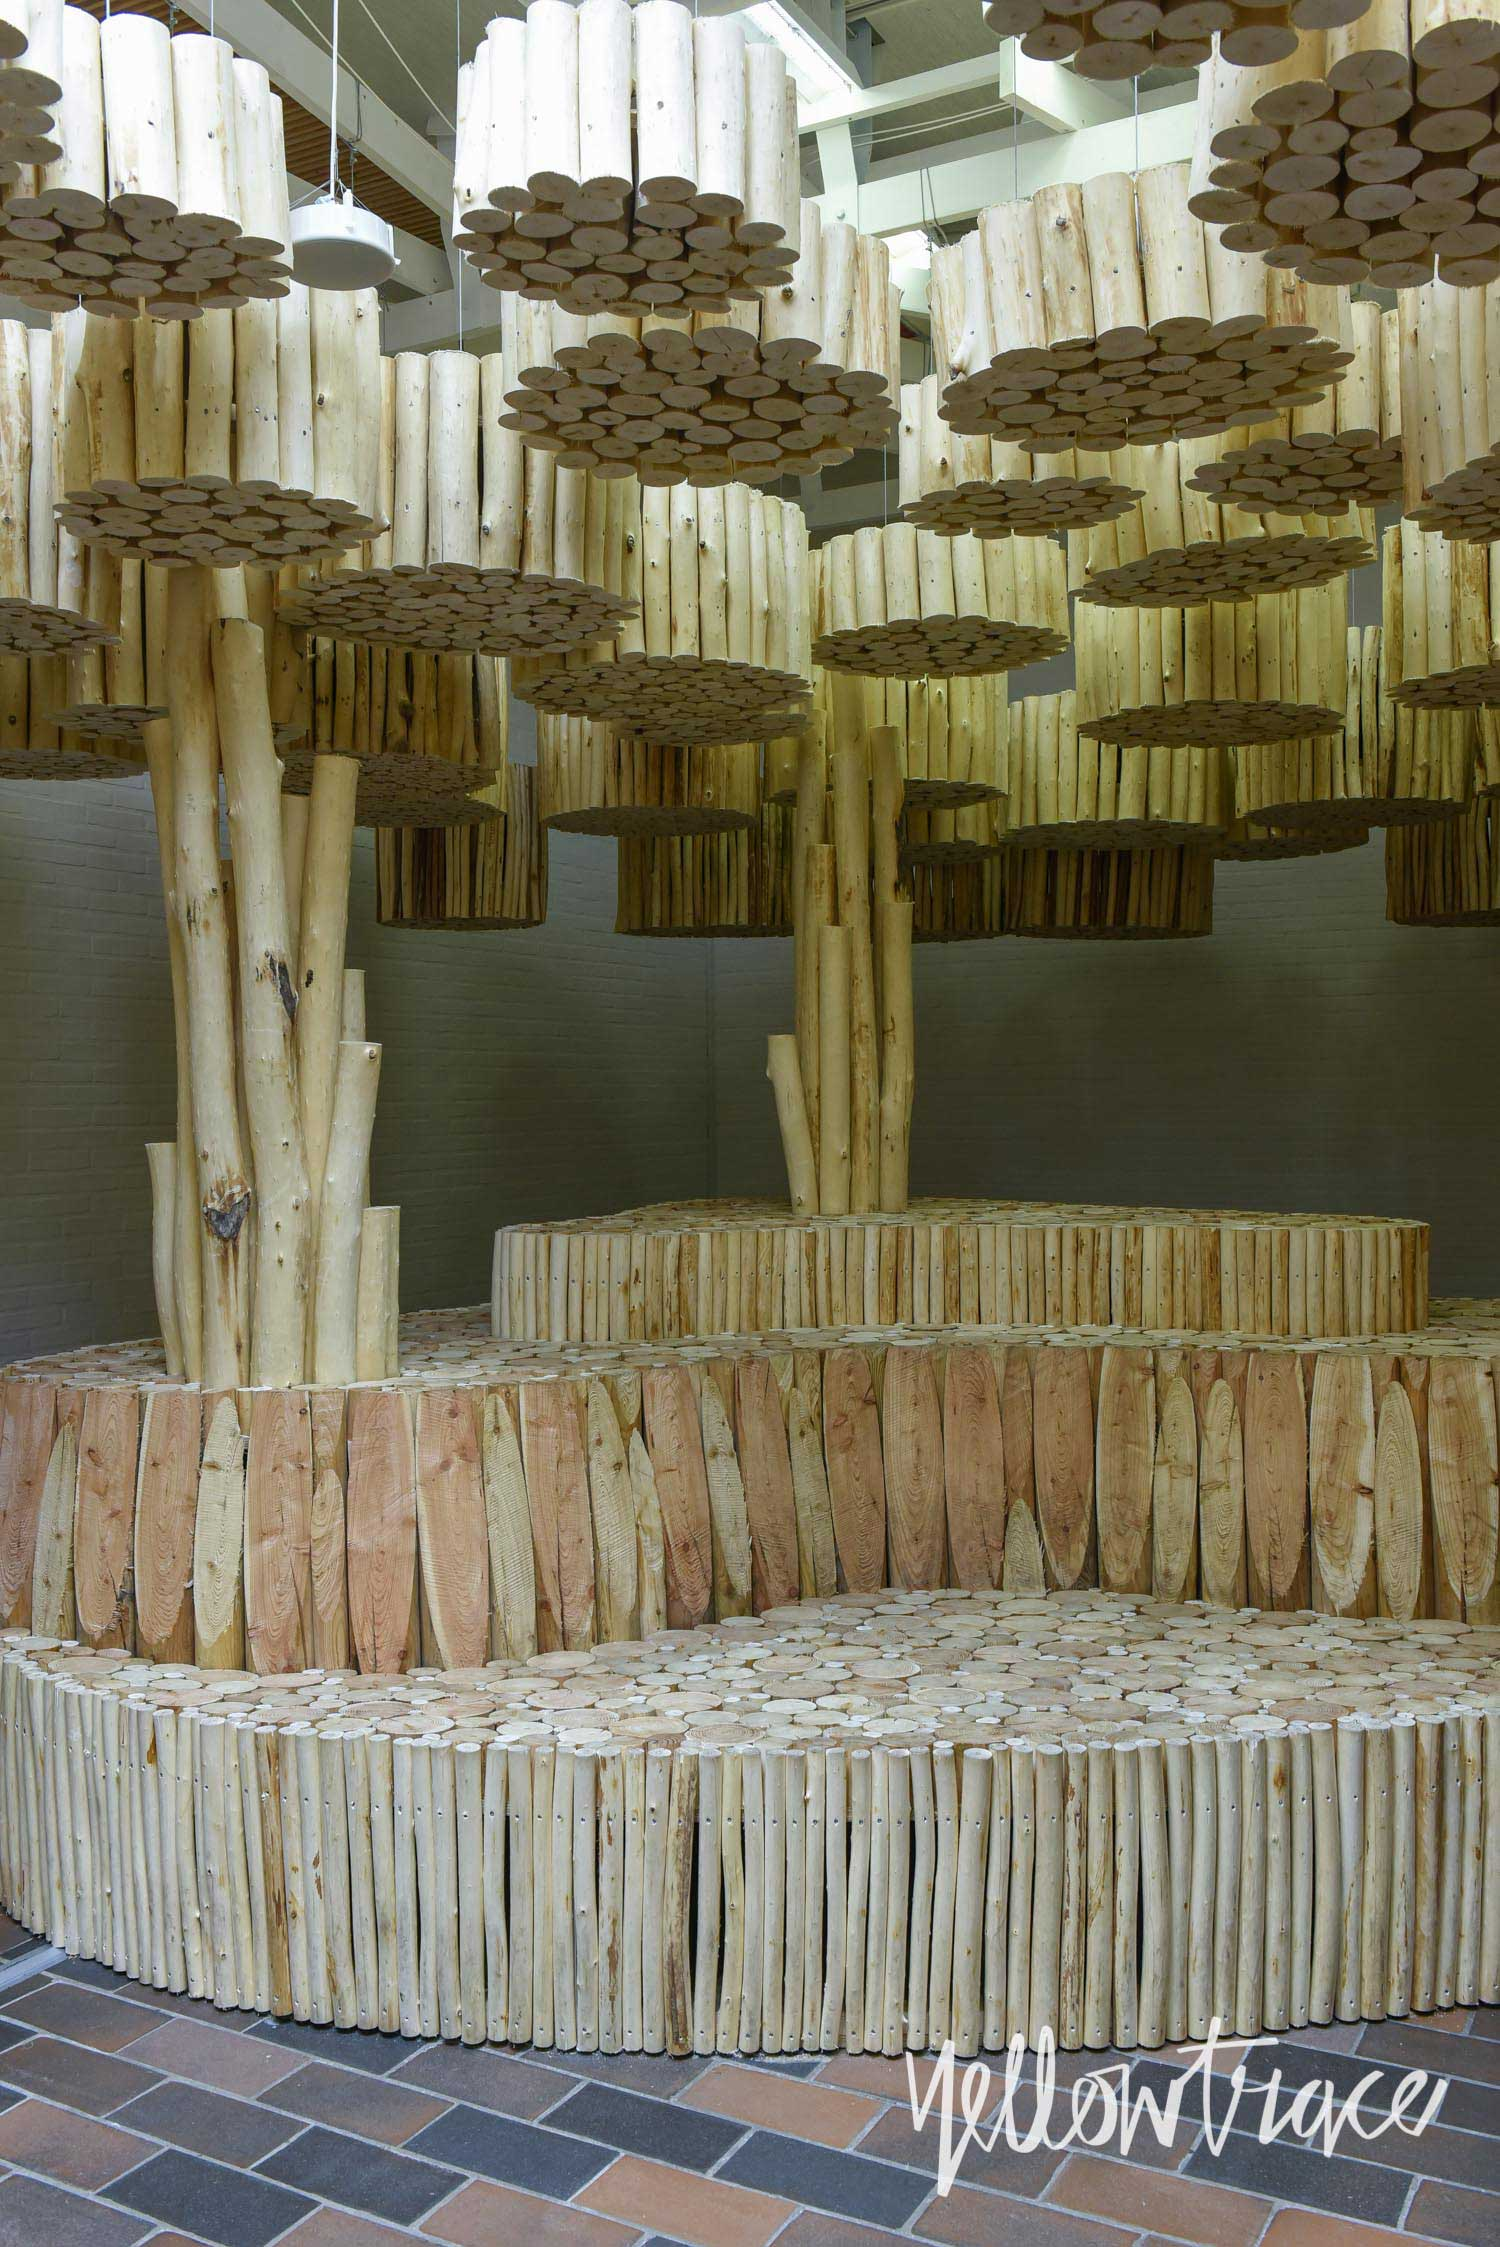 African Architecture Exhibition at Louisiana Museum of Modern Art | Yellowtrace